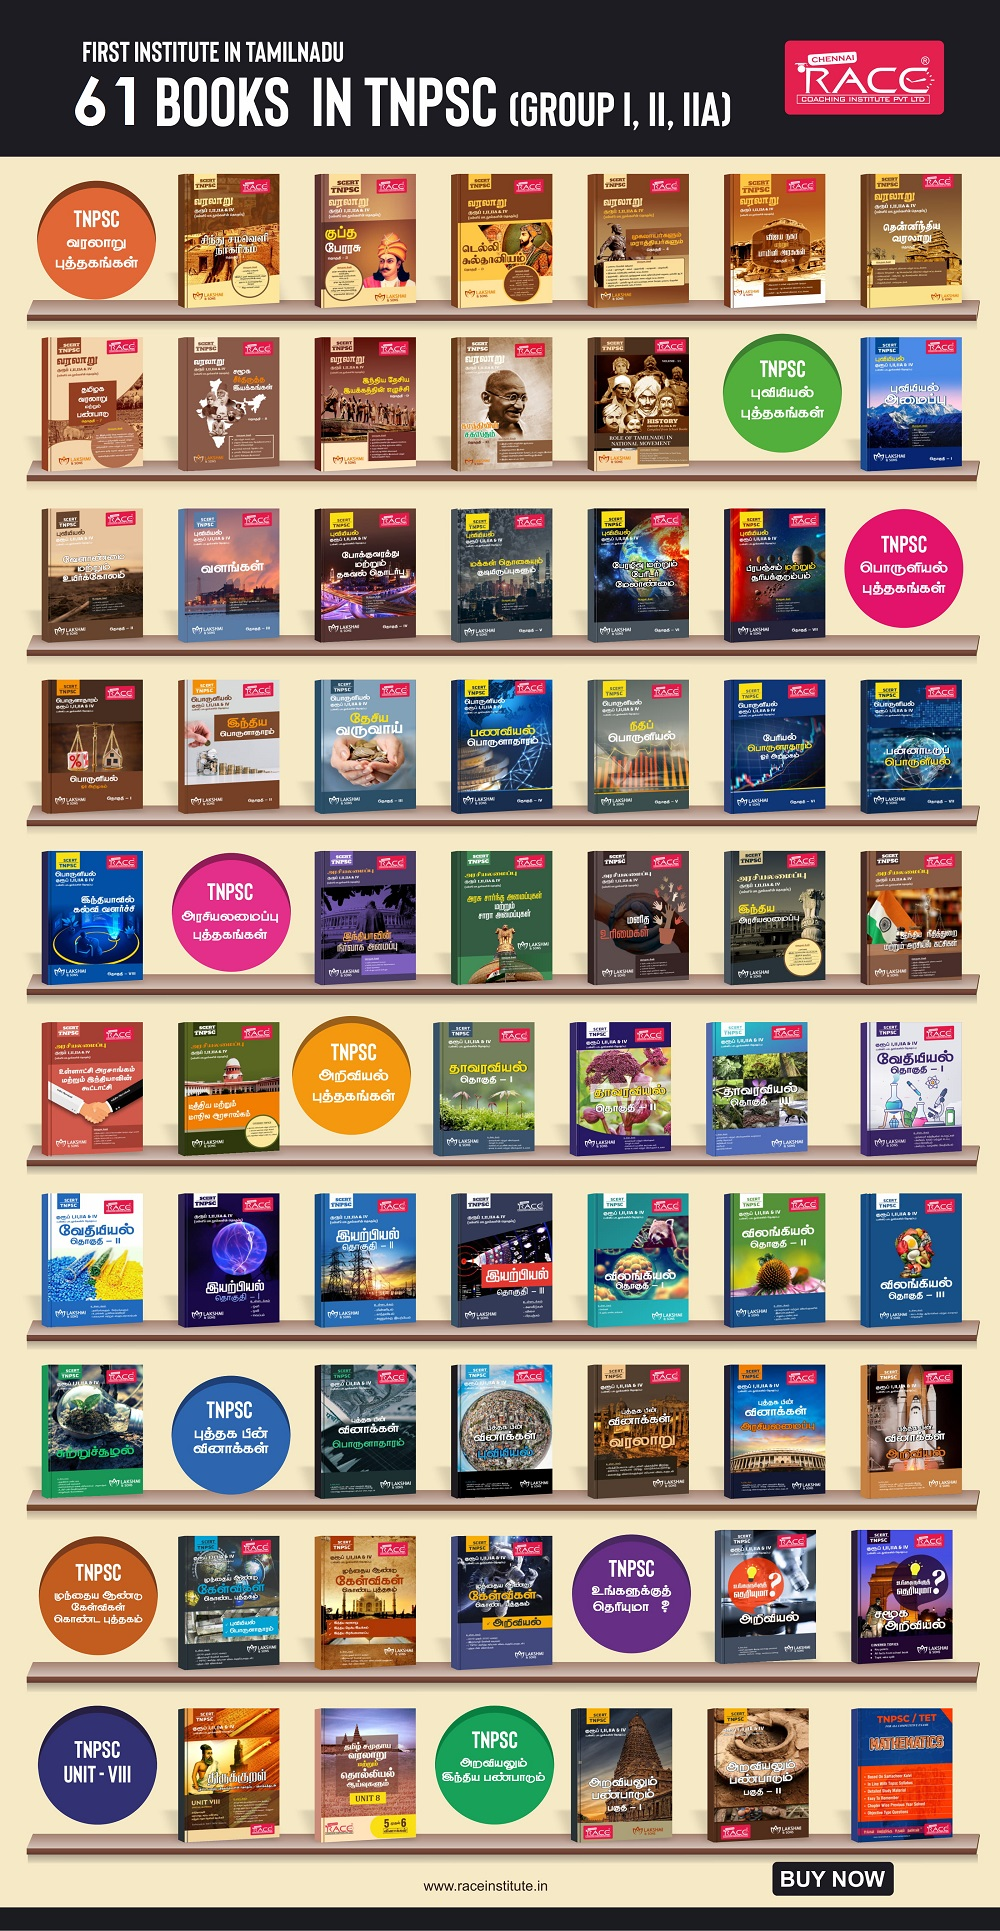 TNPSC-61-BOOKS-FOR-TNPSC-GROUP-1-2-RACE-INSTITUTE-BUY-NOW